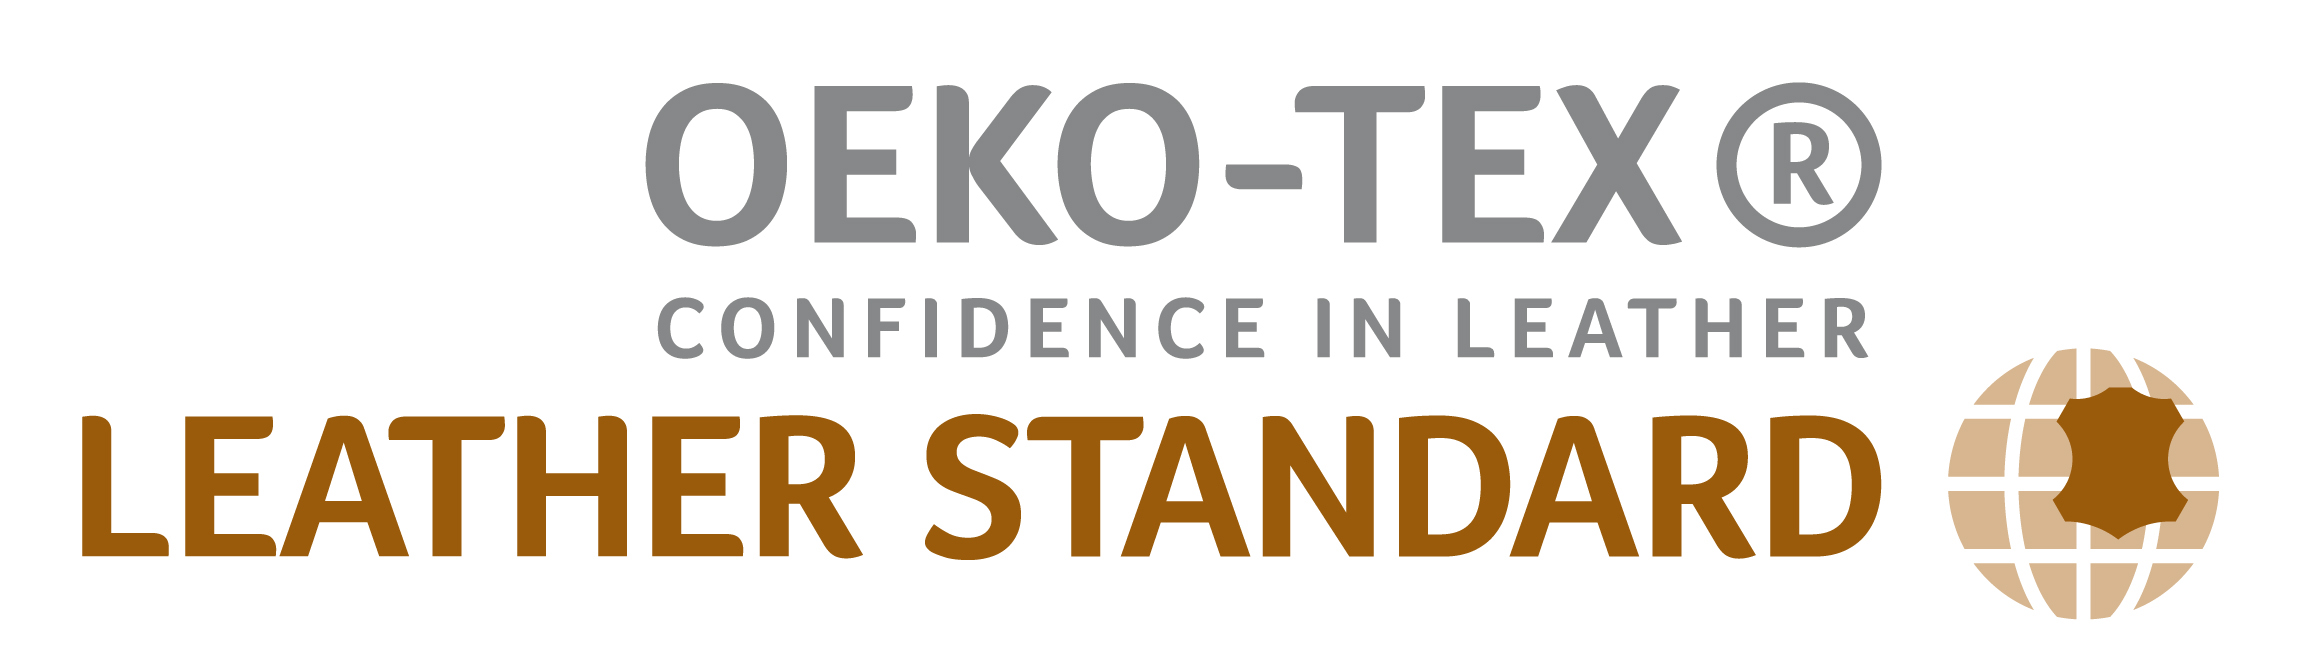 OEKO TEX CONFIDENCE IN LEATHER STANDARD